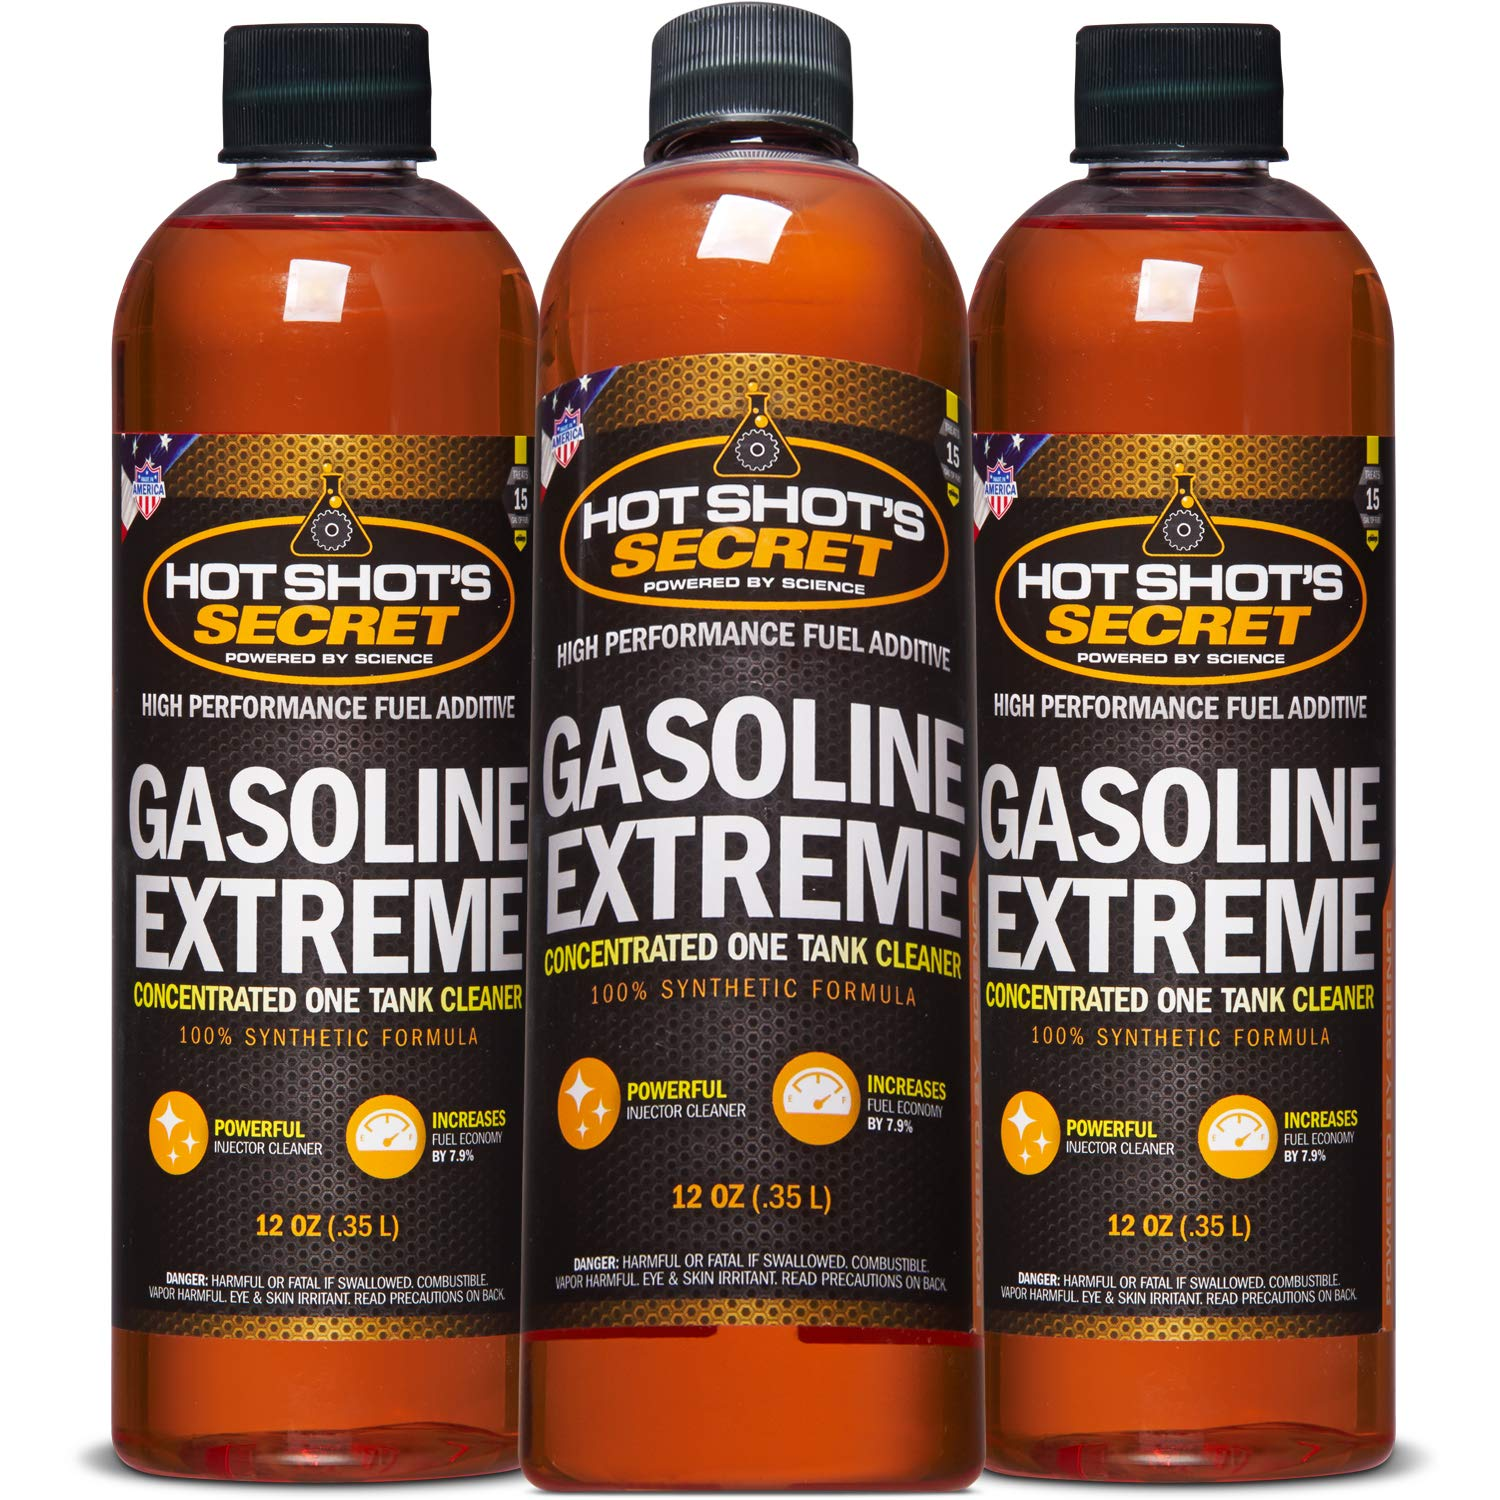 Hot Shot's Secret 3 Pack - Gasoline Extreme - Concentrated Injector Cleaner - 12 OZ Bottle Restores for 10K Miles by Hot Shot's Secret